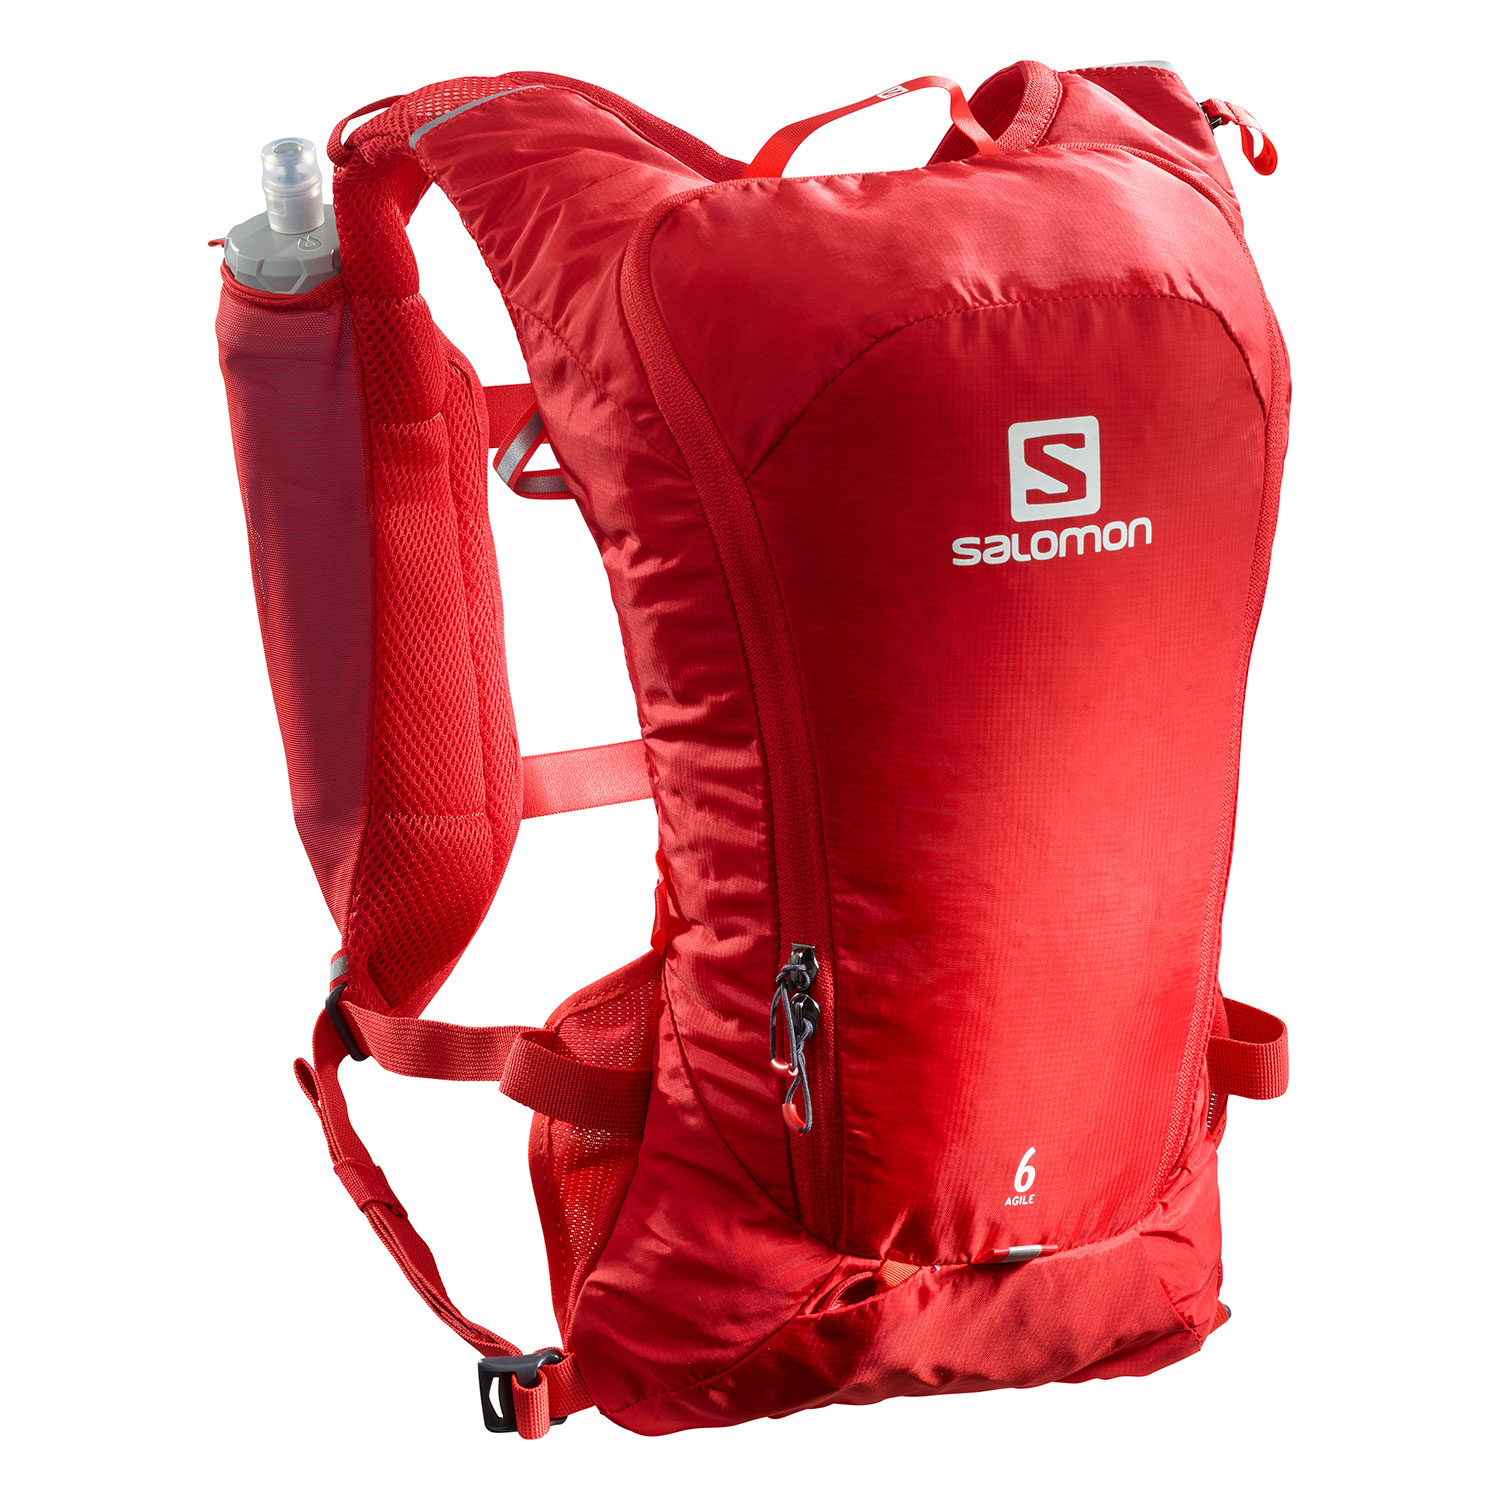 Salomon Agile 6 Set Backpack - Goji Berry